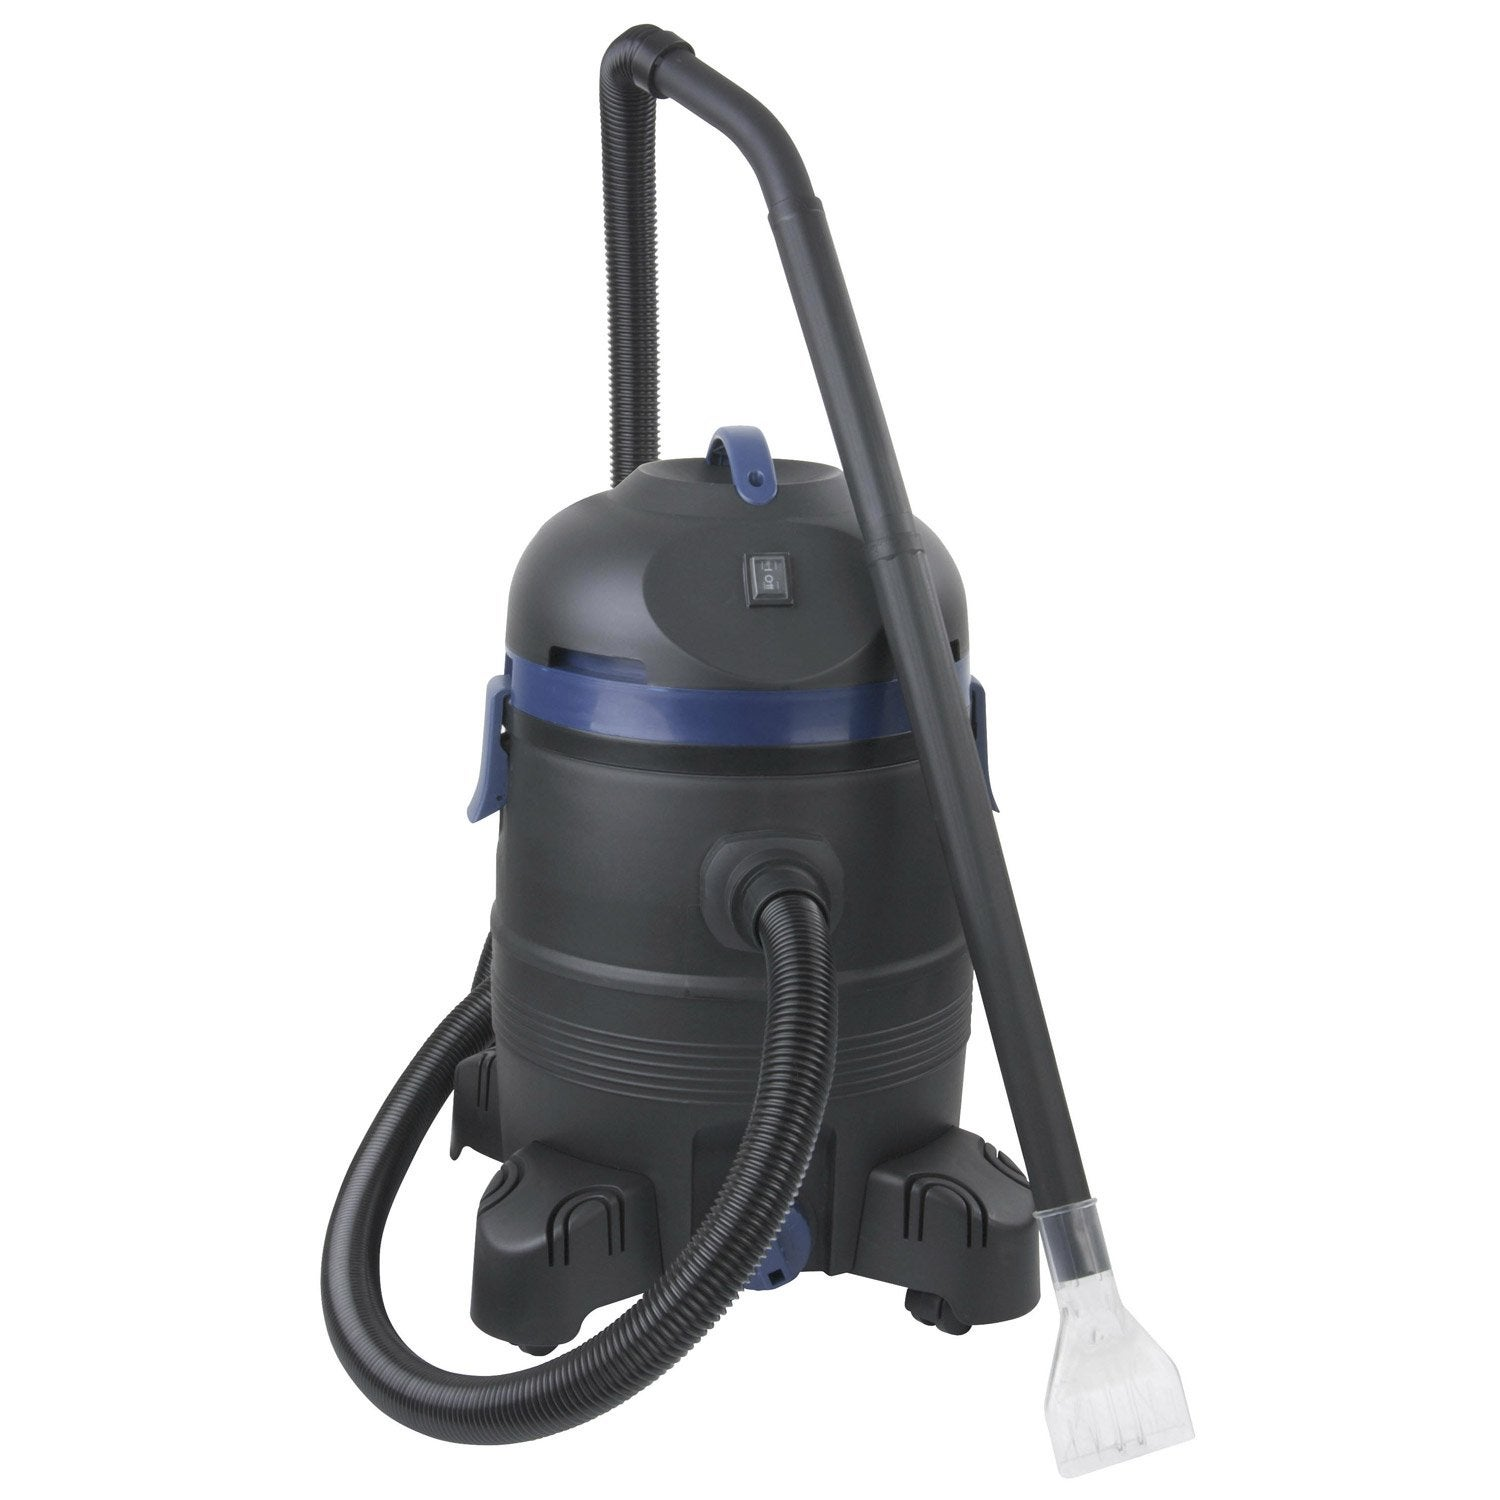 aspirateur de bassin ubbink vacuprocleaner maxi 5000 l leroy merlin. Black Bedroom Furniture Sets. Home Design Ideas